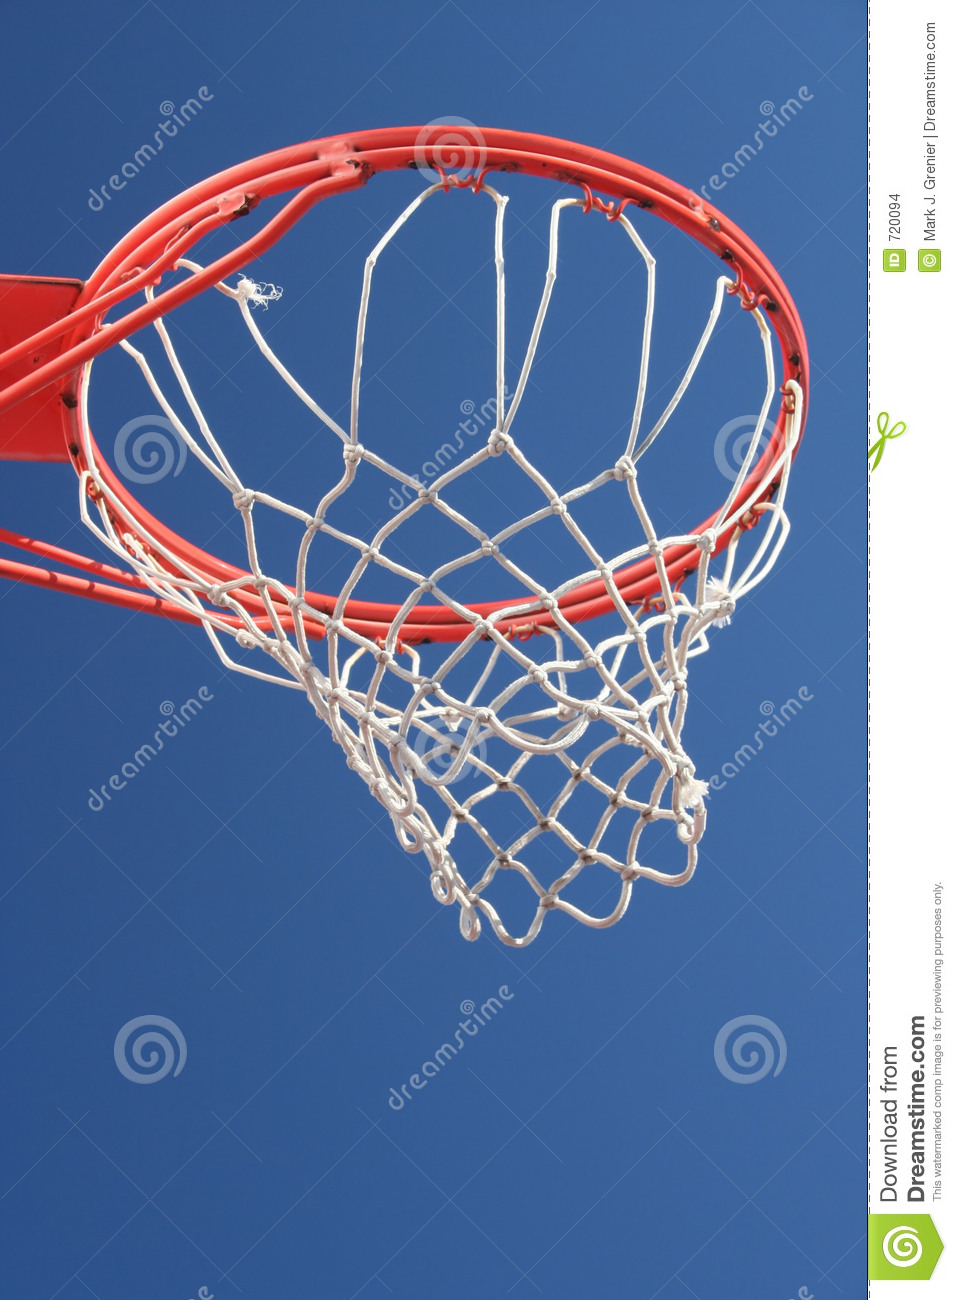 Netto basketbal